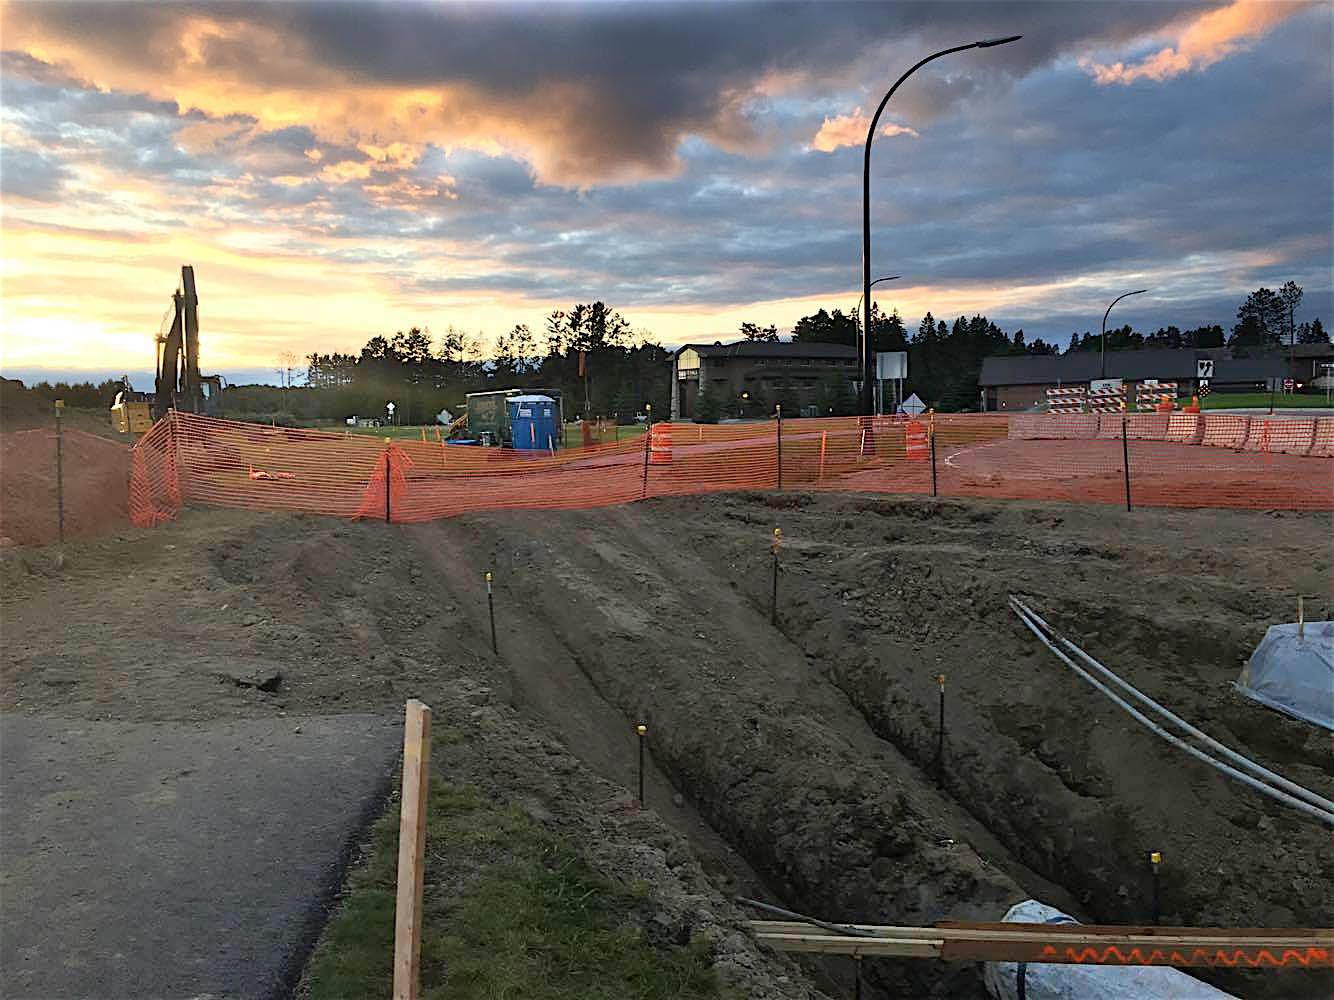 June 24, 2017: Workers on a site near the Itasca Community College identifies themselves as working for Acura, a contractor of Enbridge. They said they were working to put a 'sleeve' Line 3 because the pipe had a 'bend' in it.